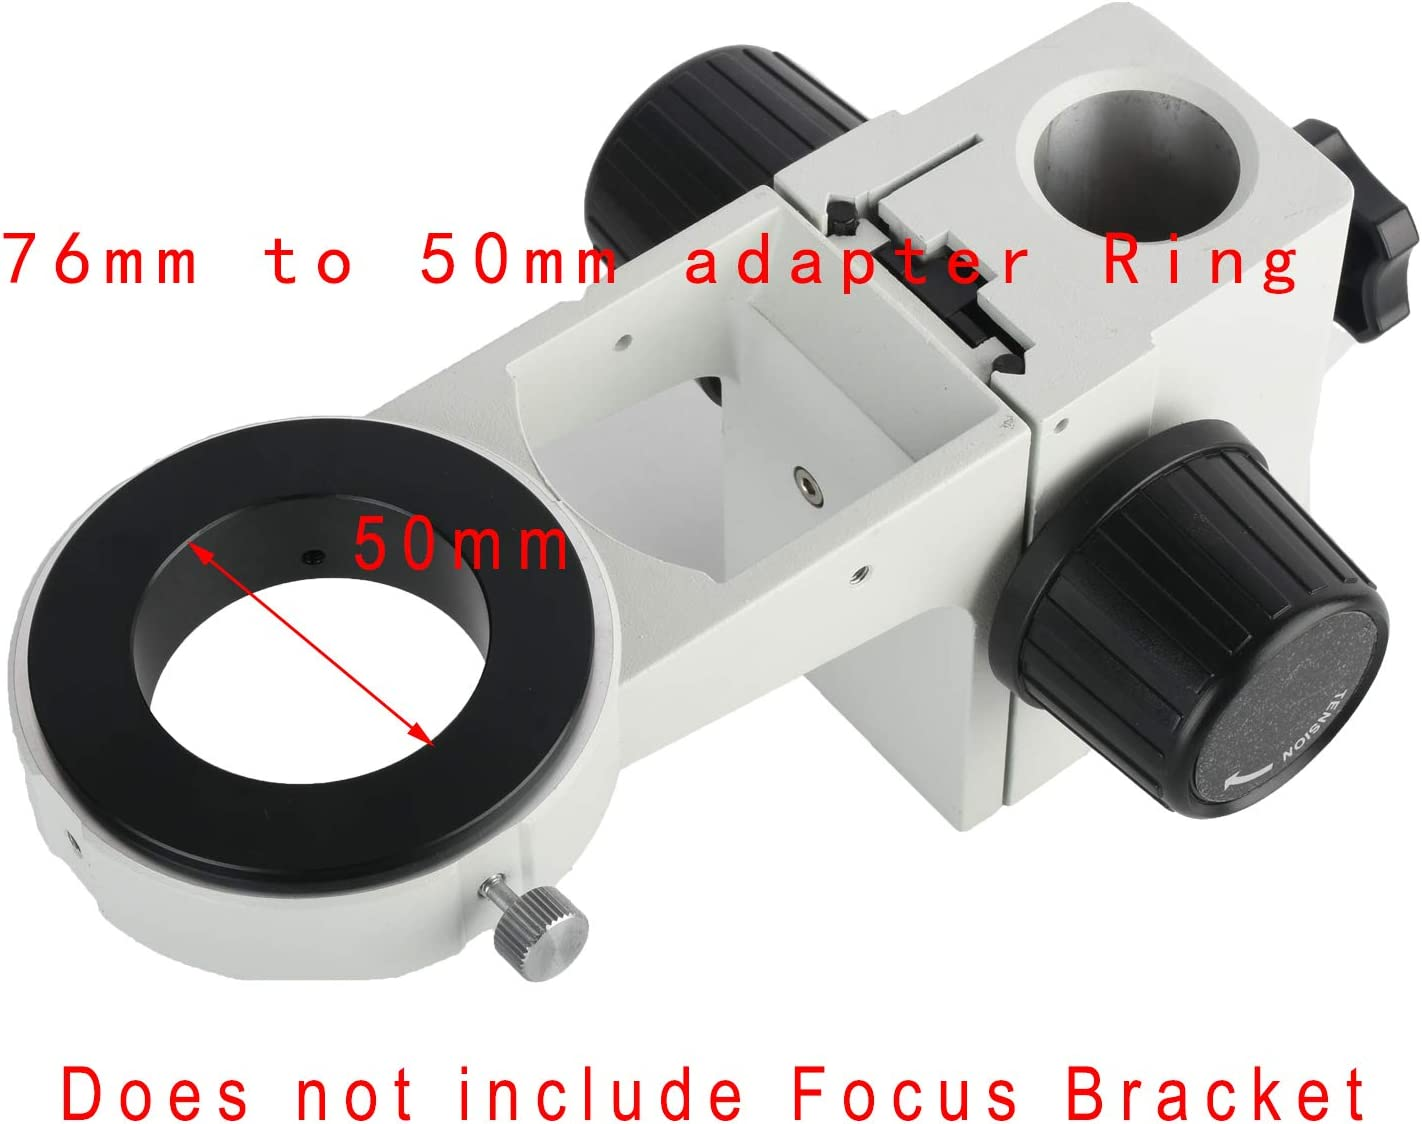 KOPPACE Stereo Microscope Focusing Bracket Lens Interface 76mm to 50mm Microscope Adapter Ring